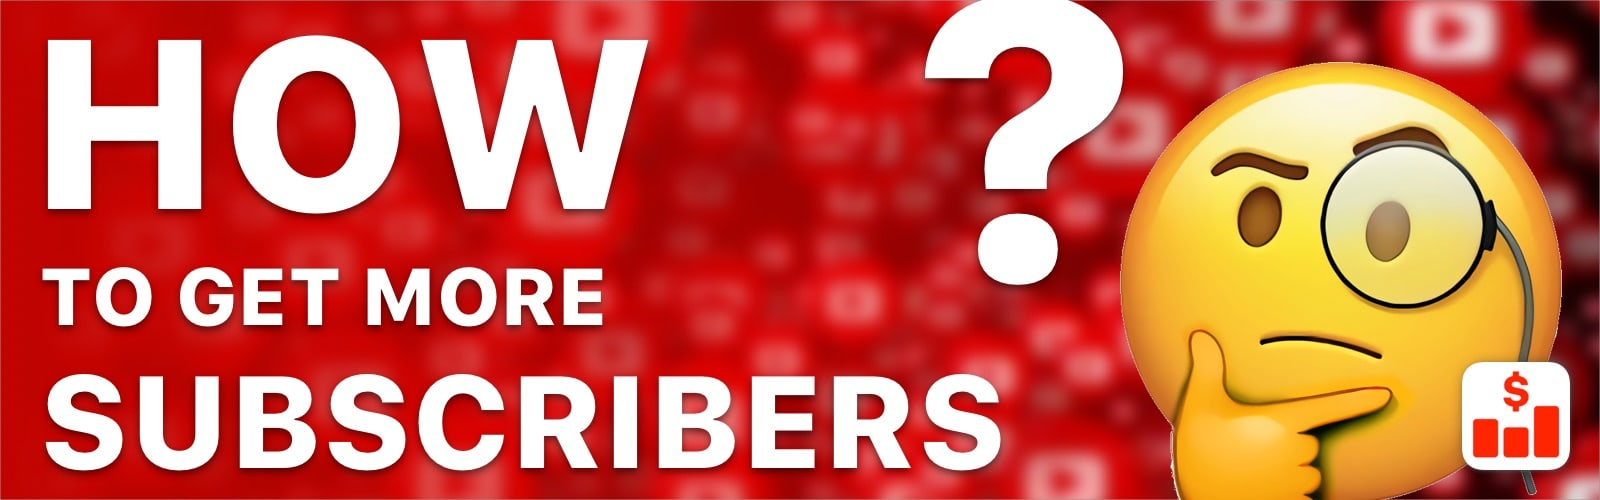 How to get more subscribers on YouTube in 2021?